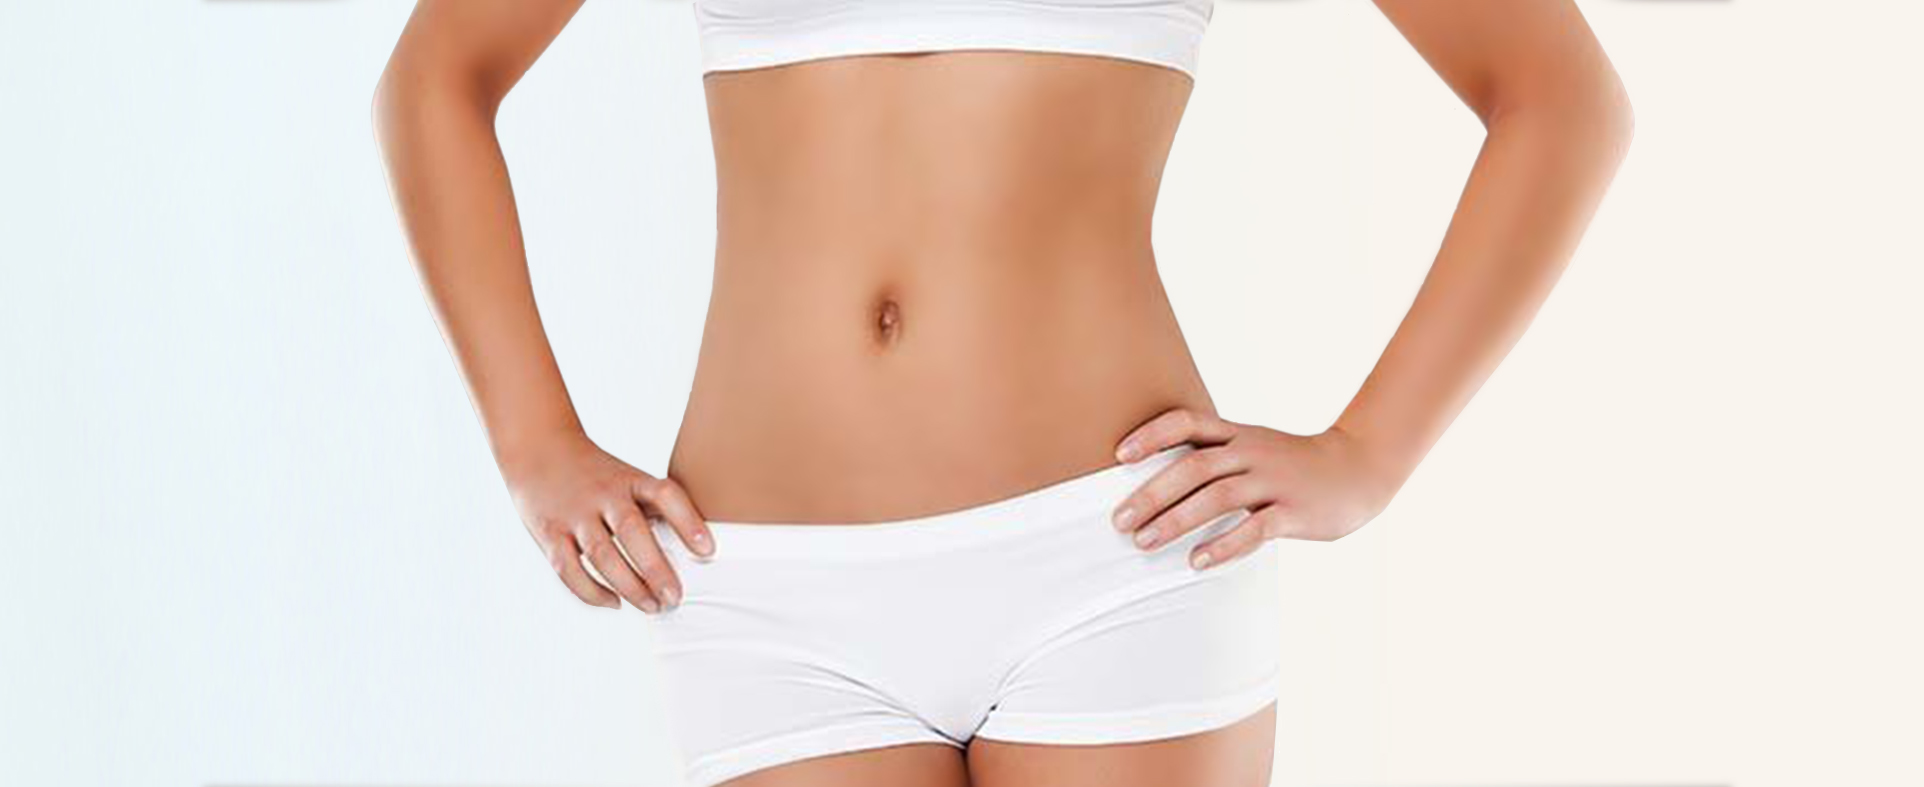 Tummy Tuck Treatment | Tummy Skin Tightening | Abdominoplasty